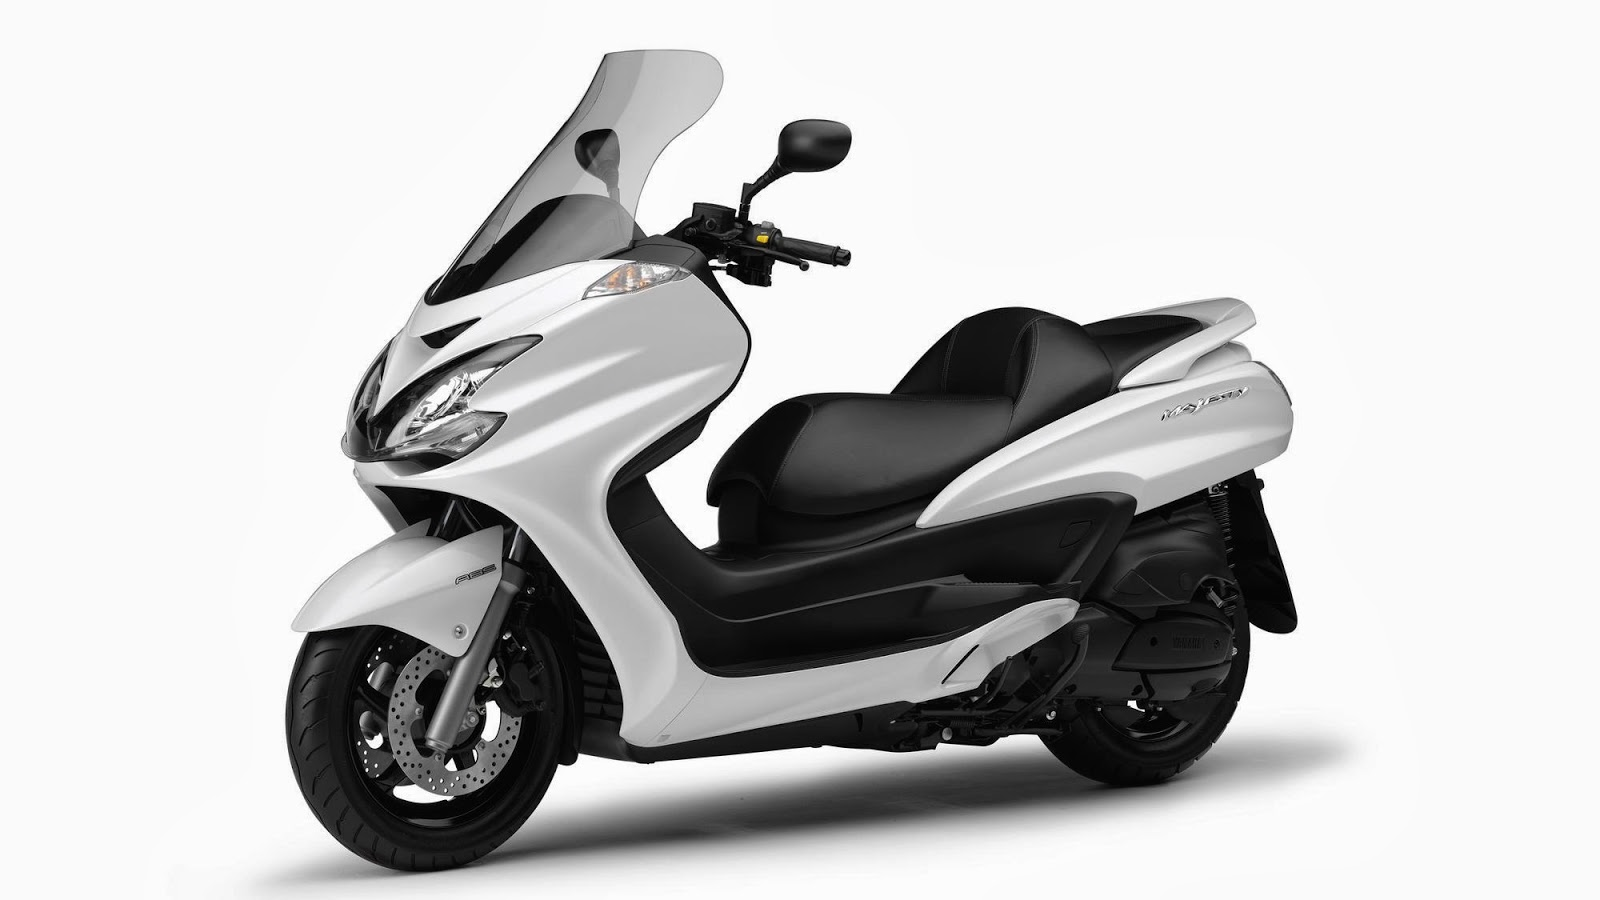 yamaha majesty scooter 400 motorcycle hd wallpapers. Black Bedroom Furniture Sets. Home Design Ideas